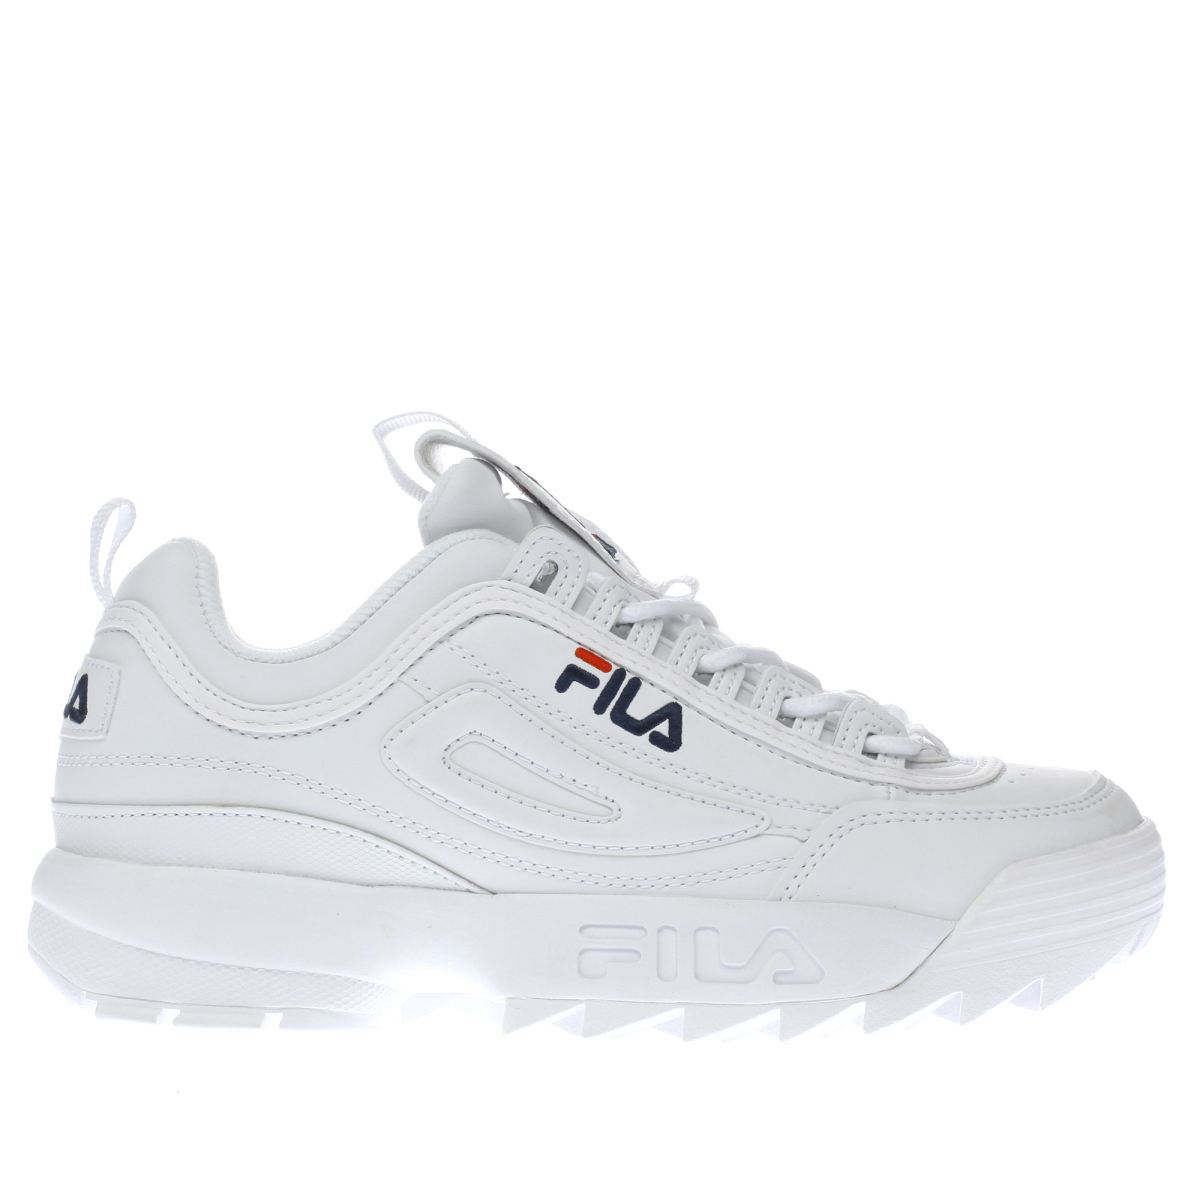 White Review Fila Low Fila White Disruptor mwN8vn0